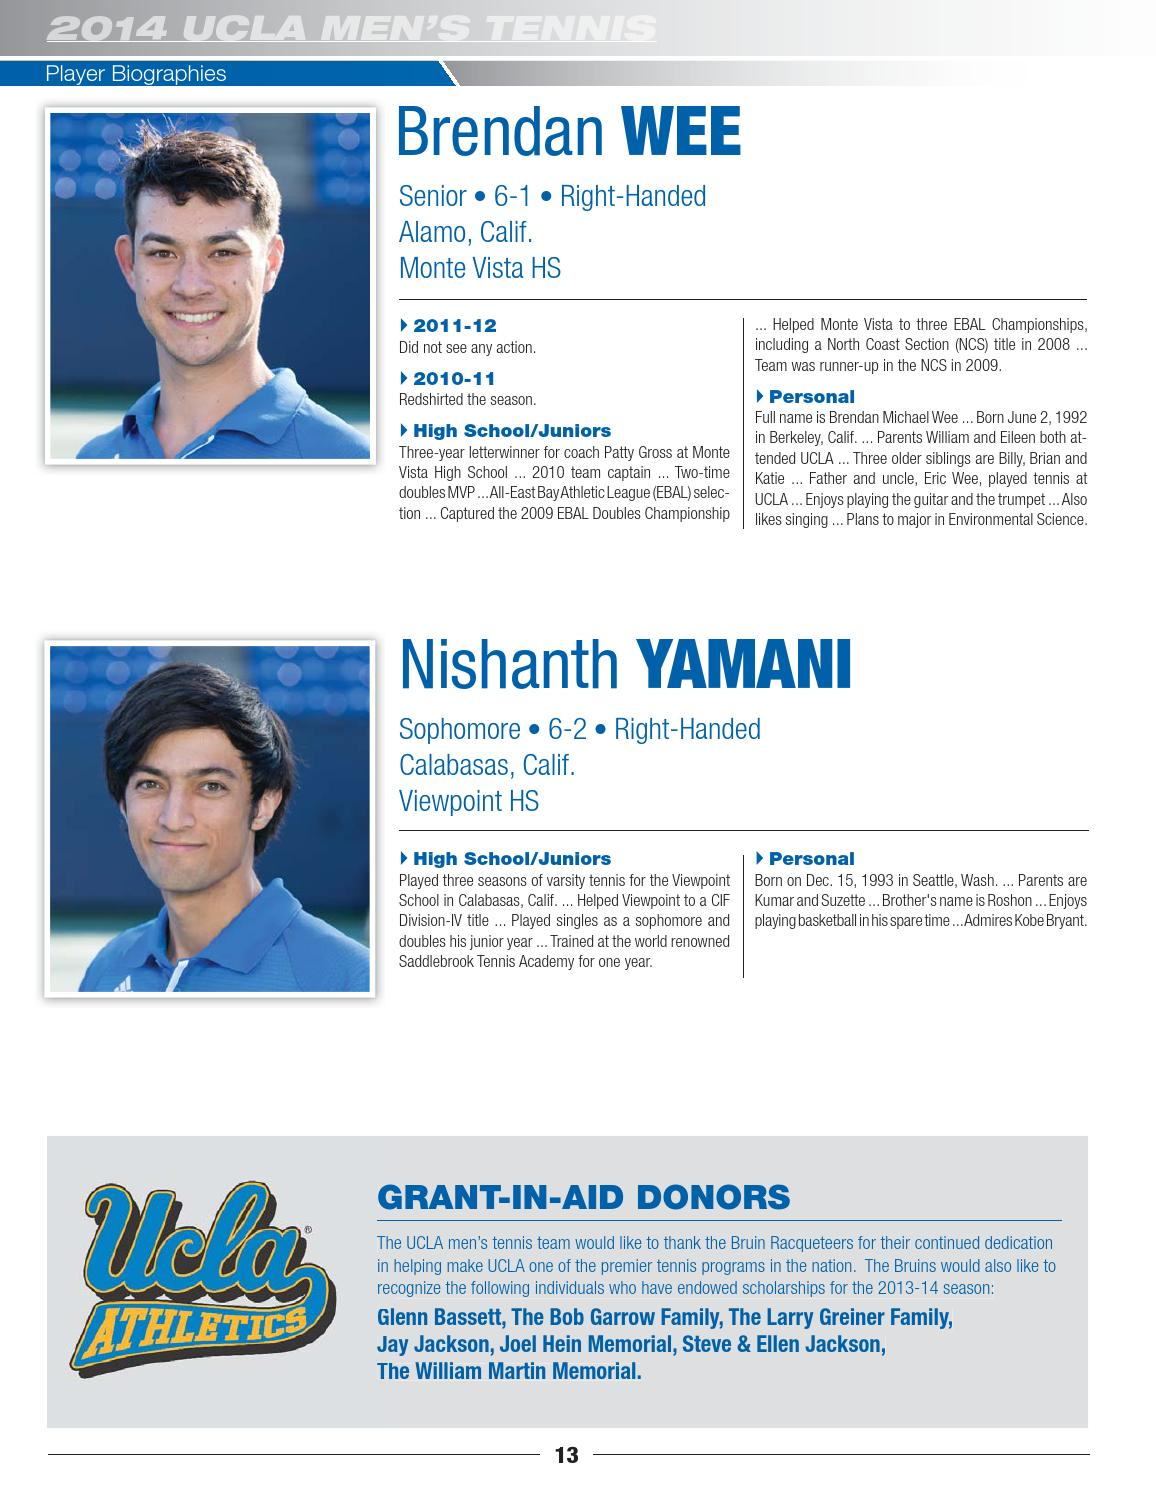 2014 UCLA Mens Tennis Media Guide By Athletics